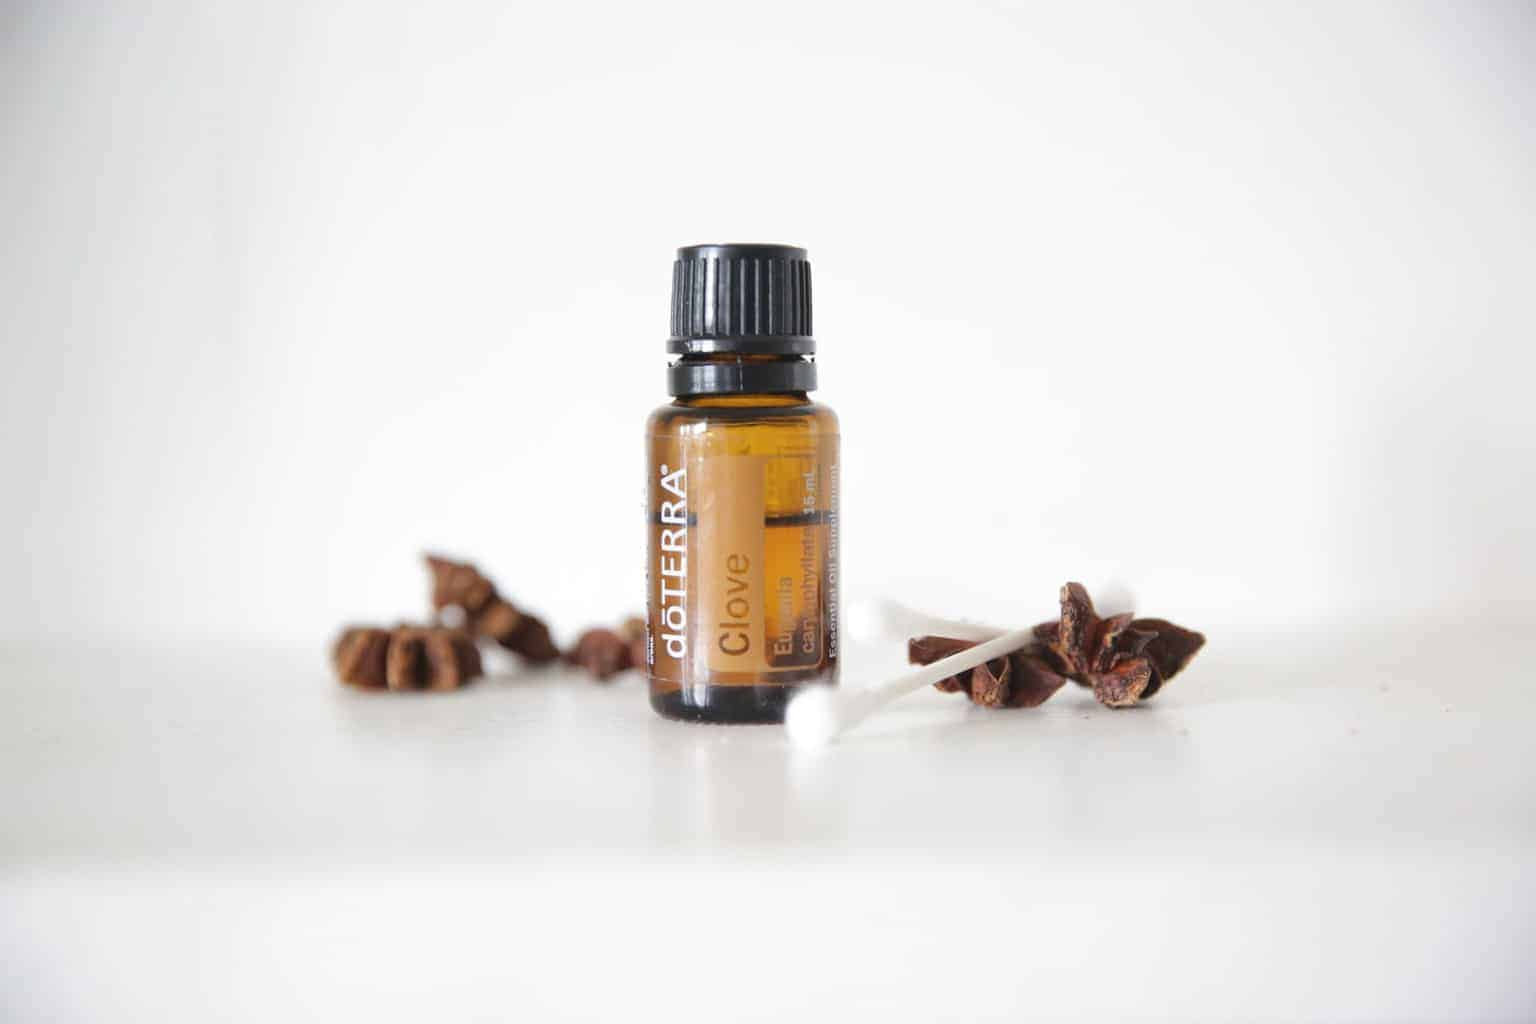 doTERRA clove essential oil bottle with dried cloves and a q tip